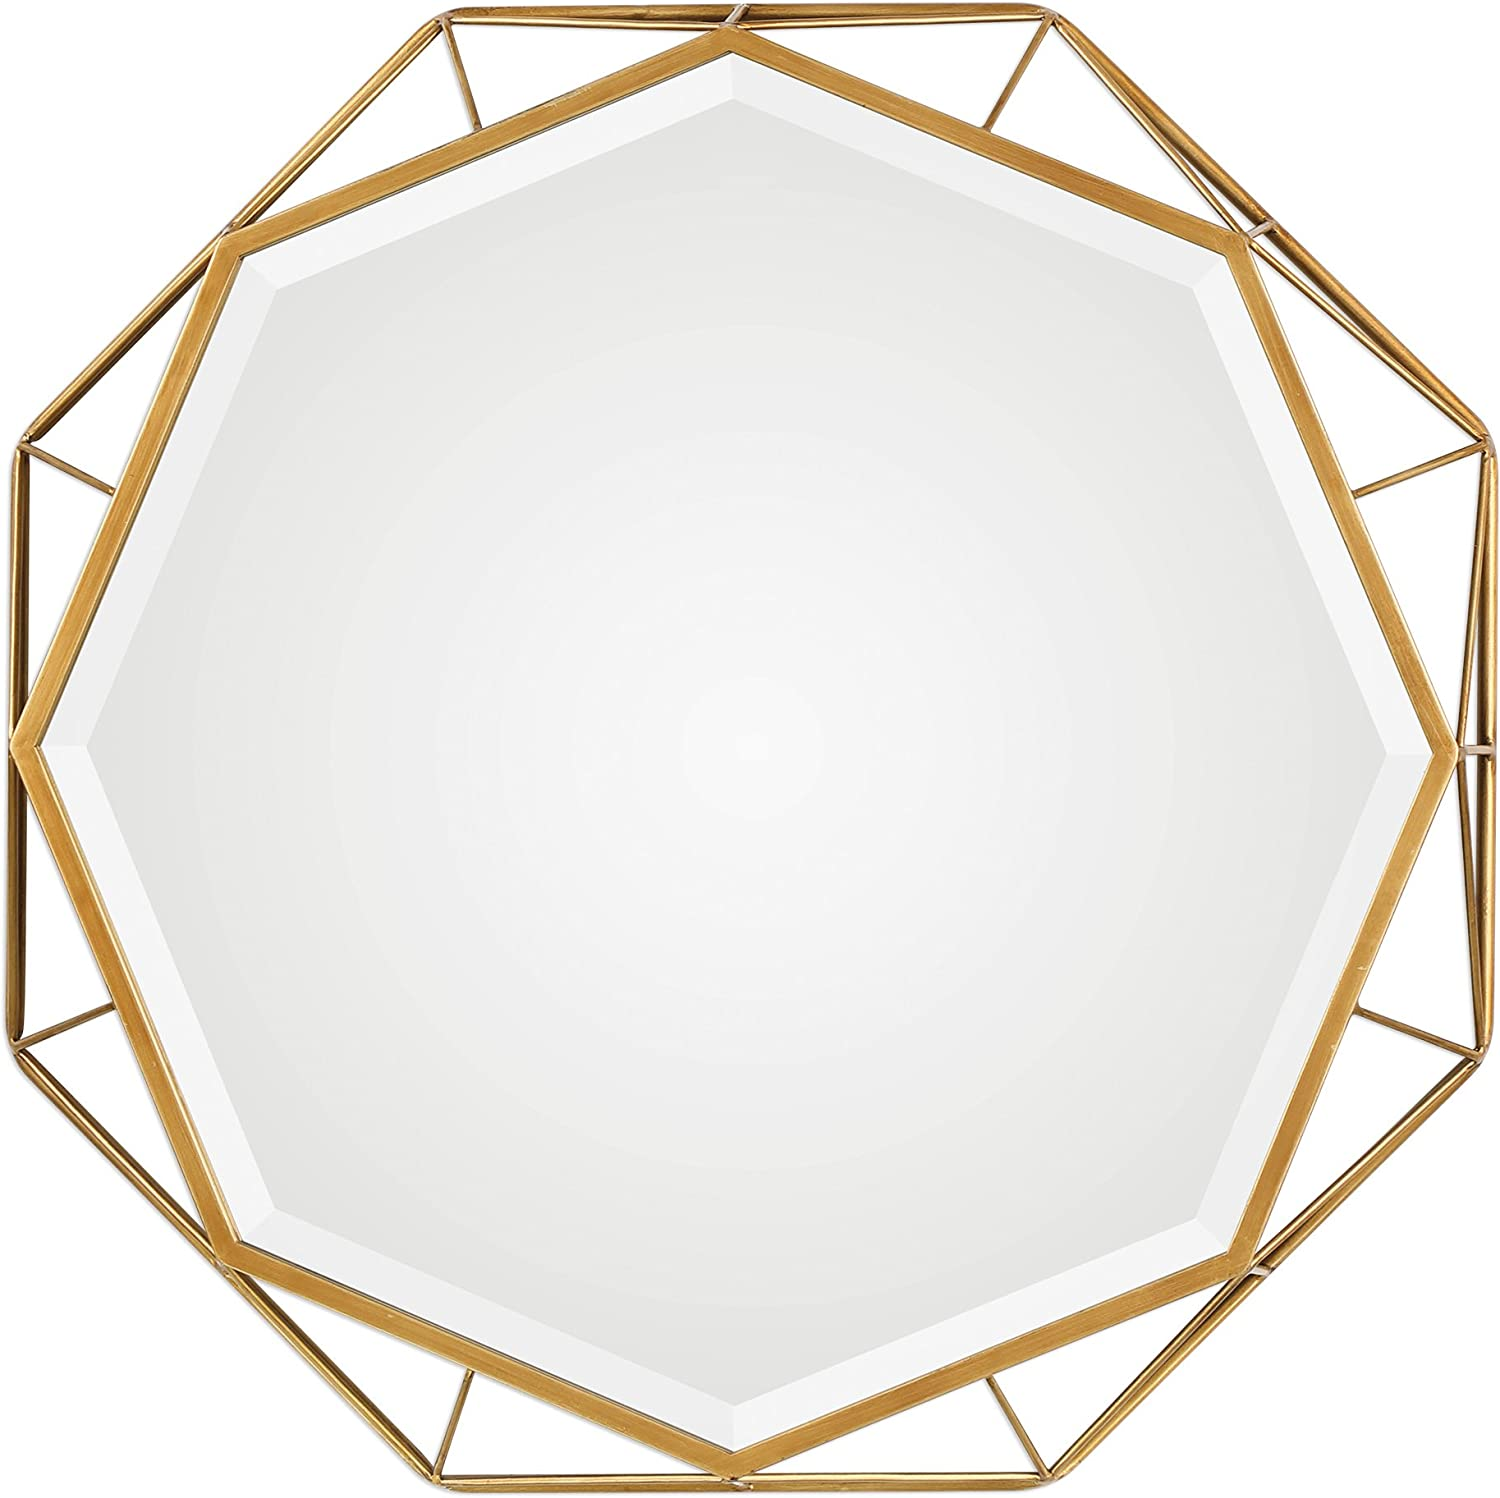 My Swanky Home 30 Gold Open Geometric Round Wall Mirror Octagon Mid Century Modern Shape Home Kitchen